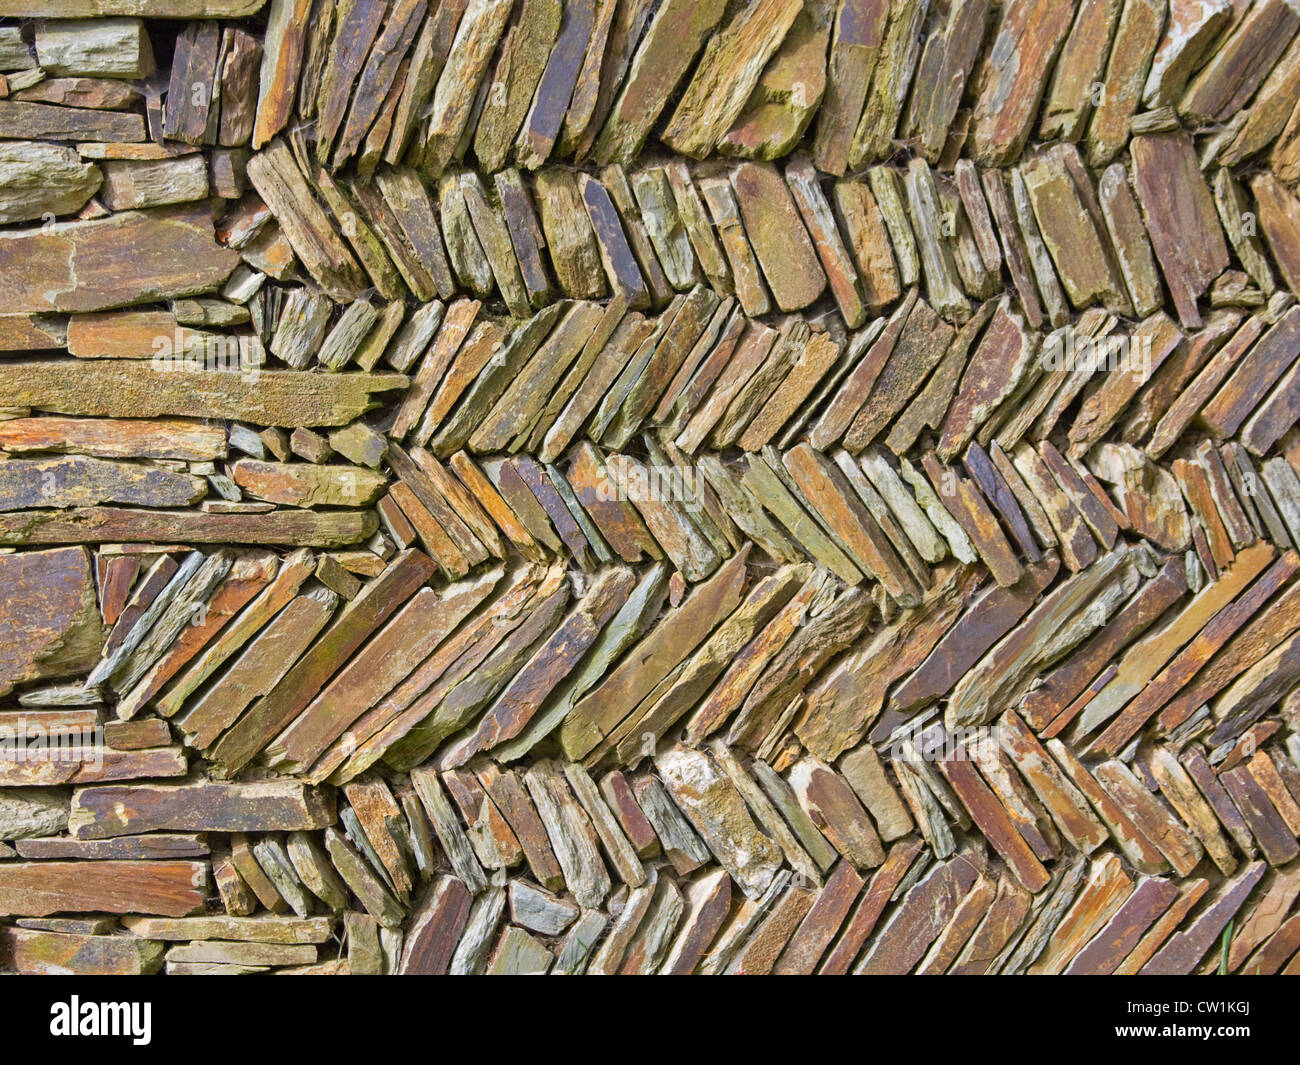 Detail from a traditional dry stone wall in a Devon field - Stock Image